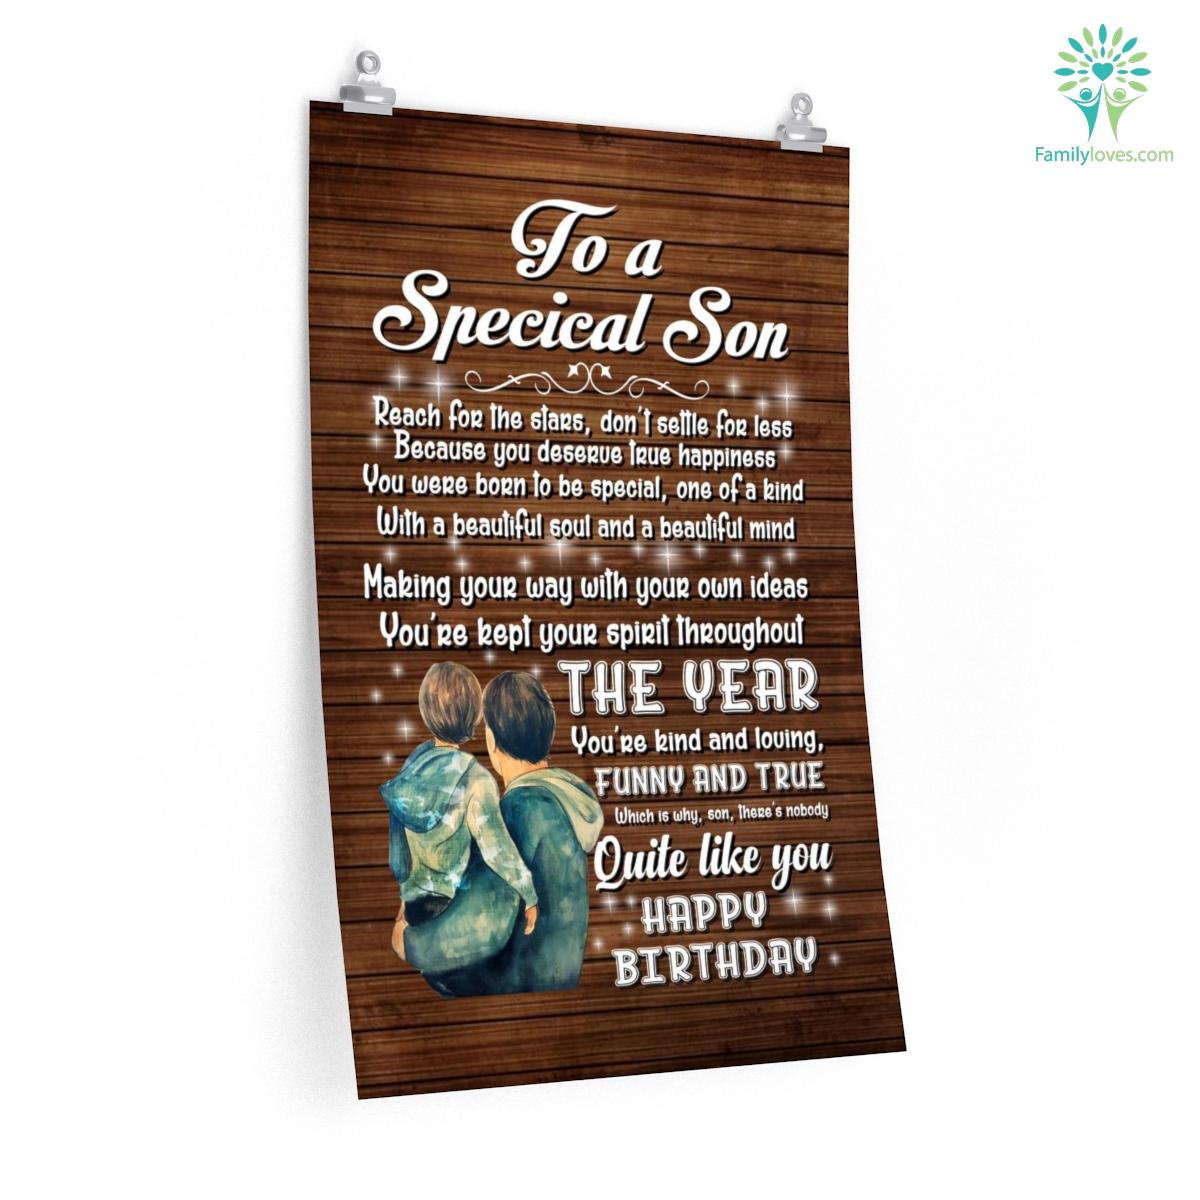 To A Specical Son Reach For The Stars Don't Settle For Less Posters Gifts Letter To My Son From Mom Familyloves.com